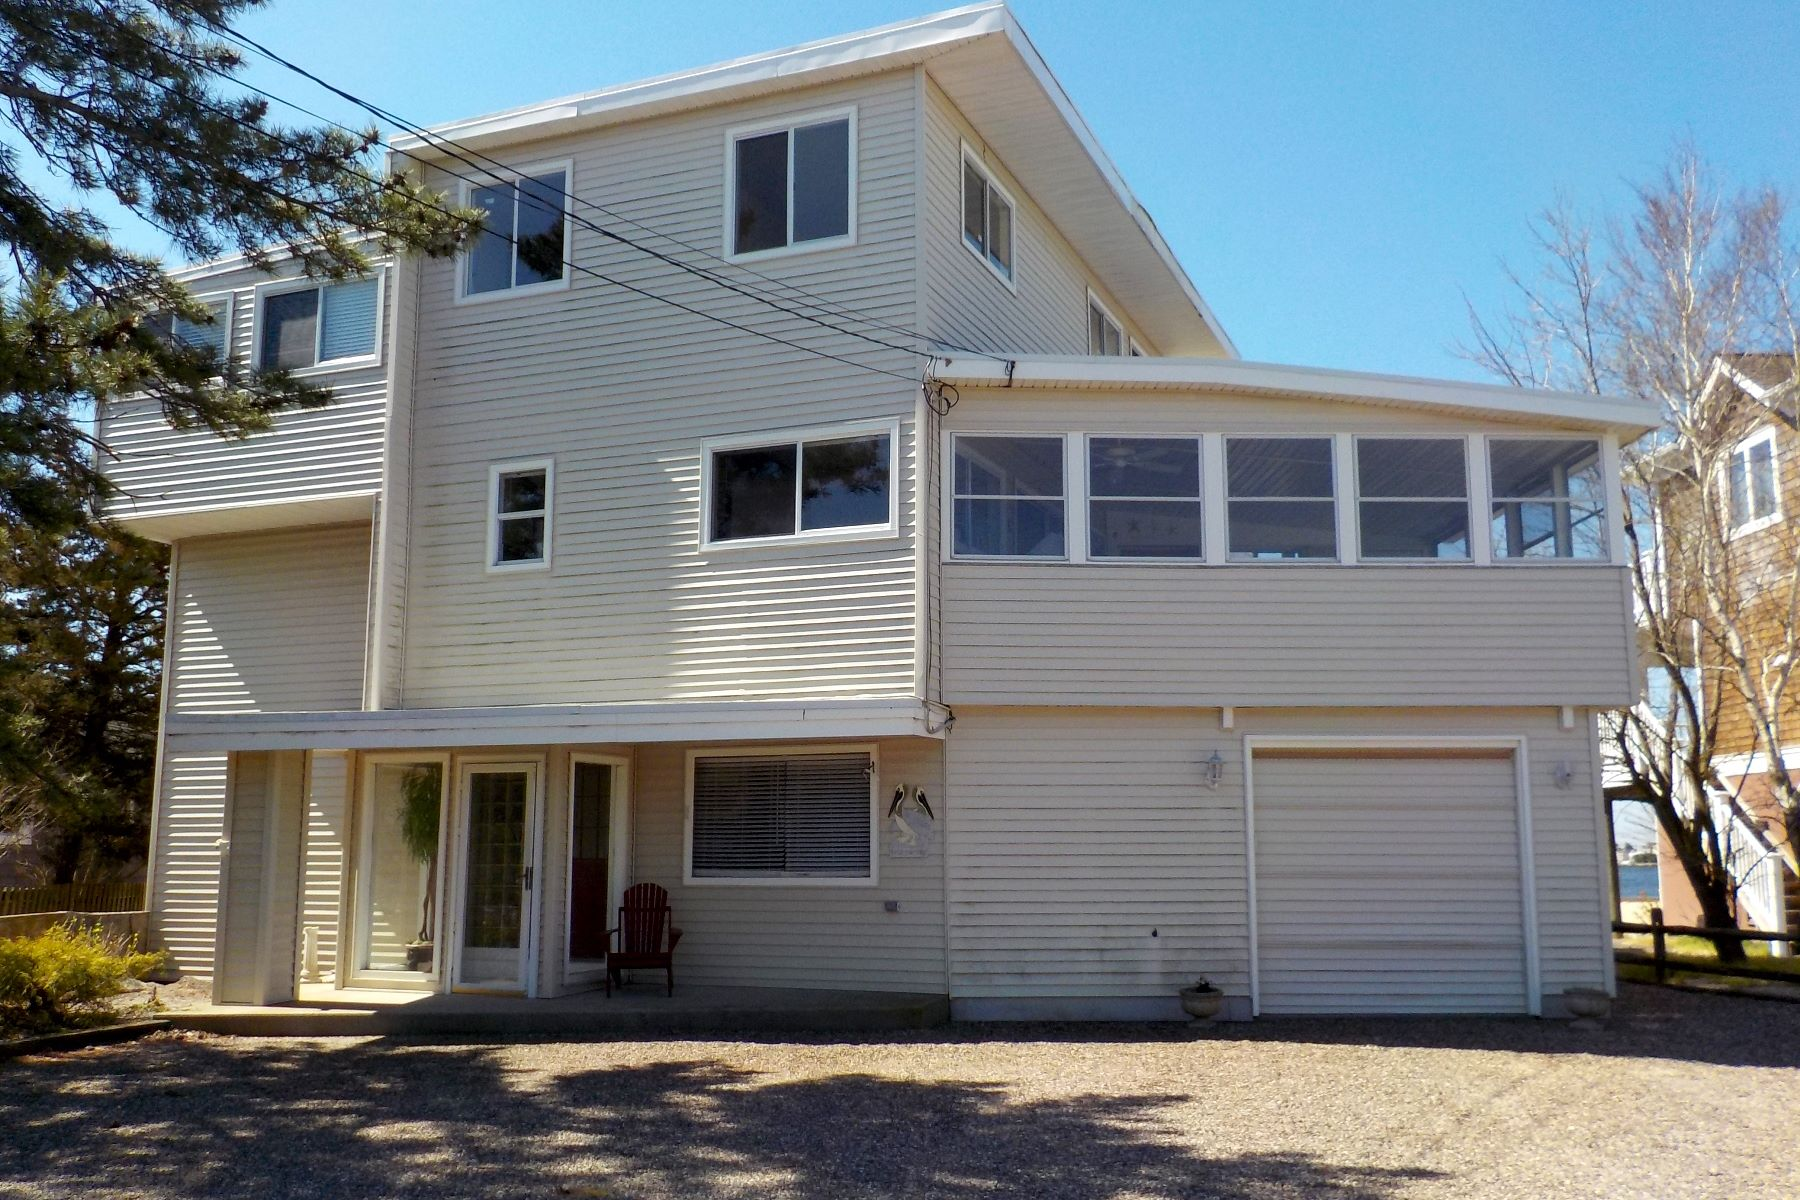 Single Family Home for Sale at GLORY DAYS 44 West 80th Street Harvey Cedars, New Jersey 08008 United States